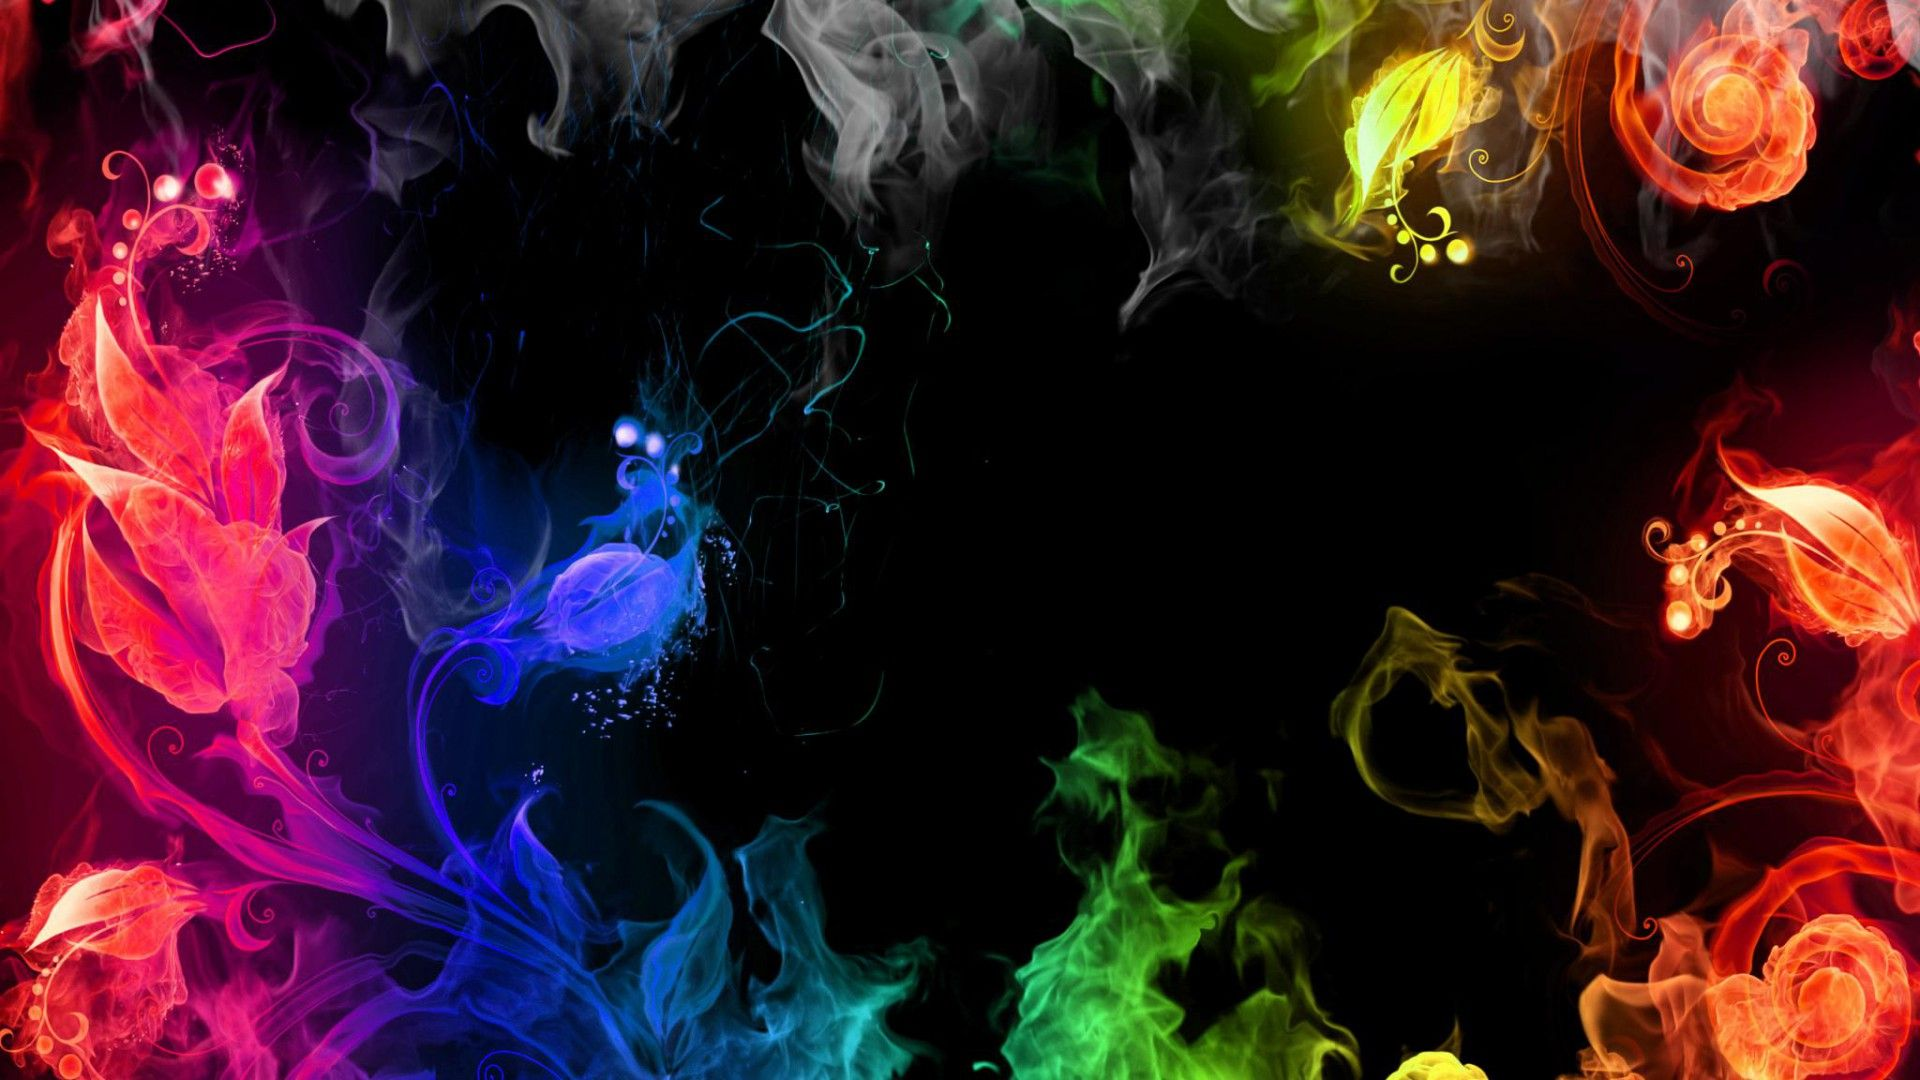 Colorful Abstract 1080p 839 Hd Wallpaper Background Hetucy